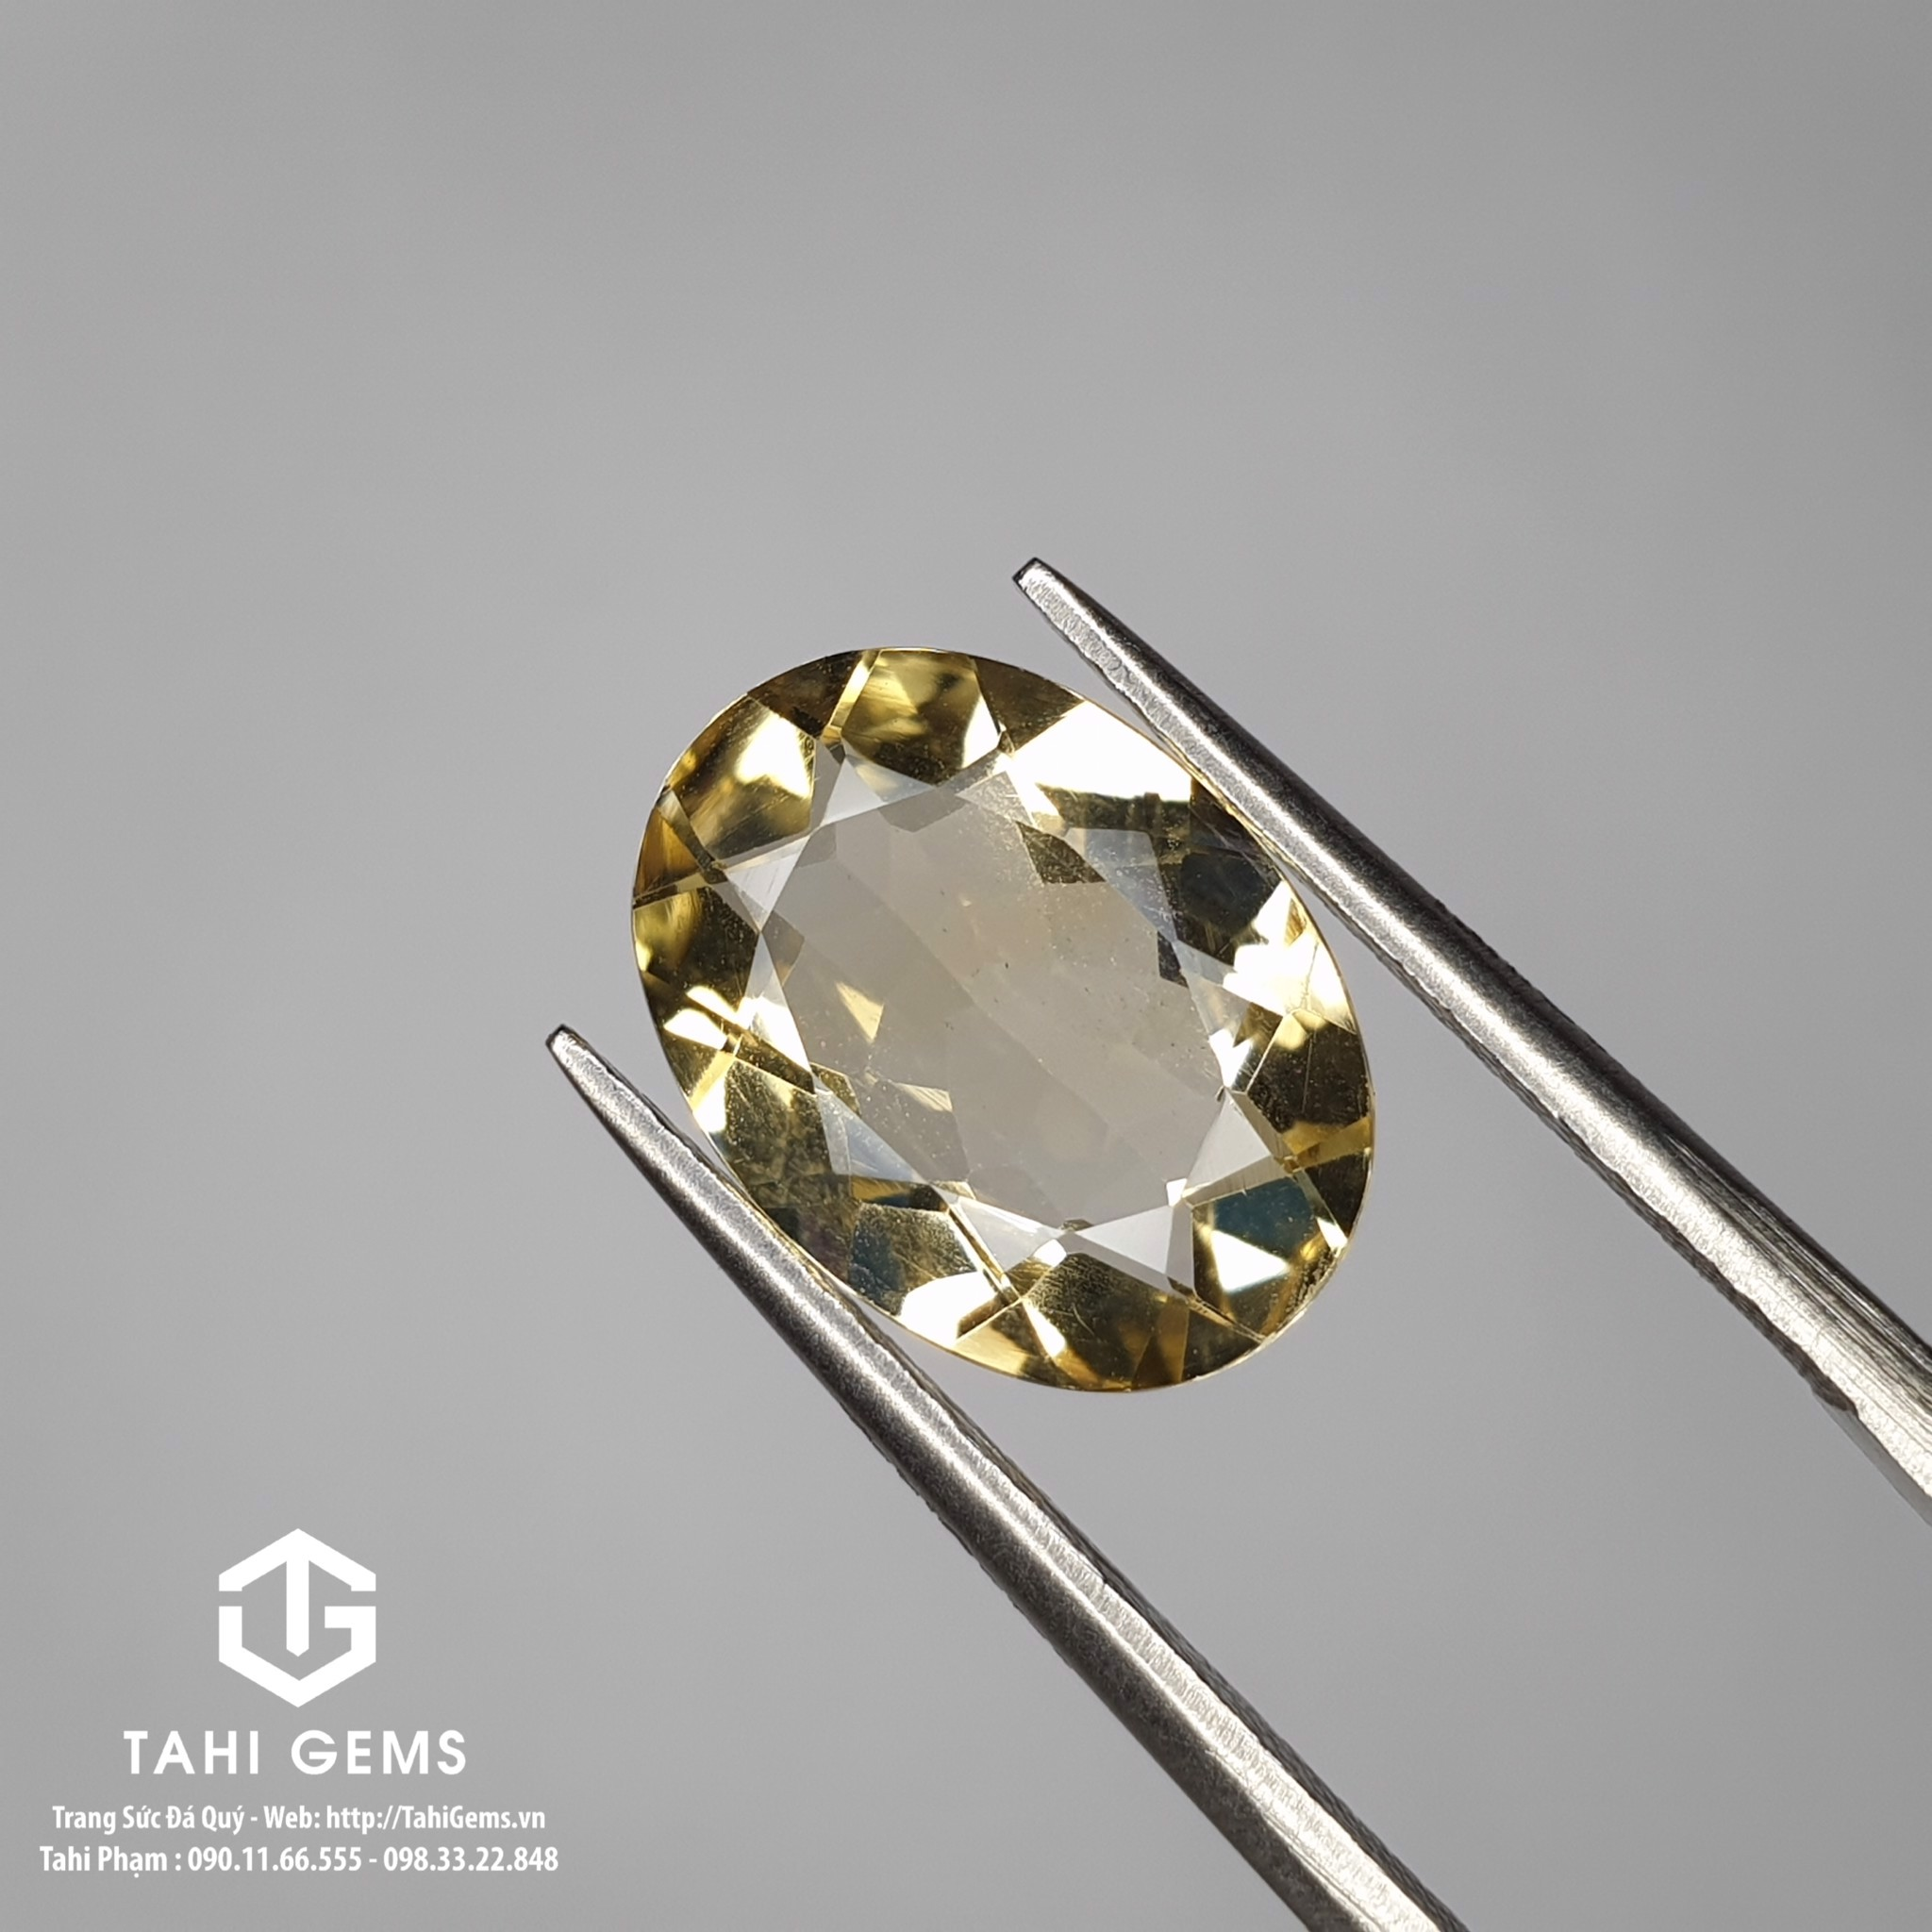 TAHI 8923 NATURAL CITRINE H3A T1